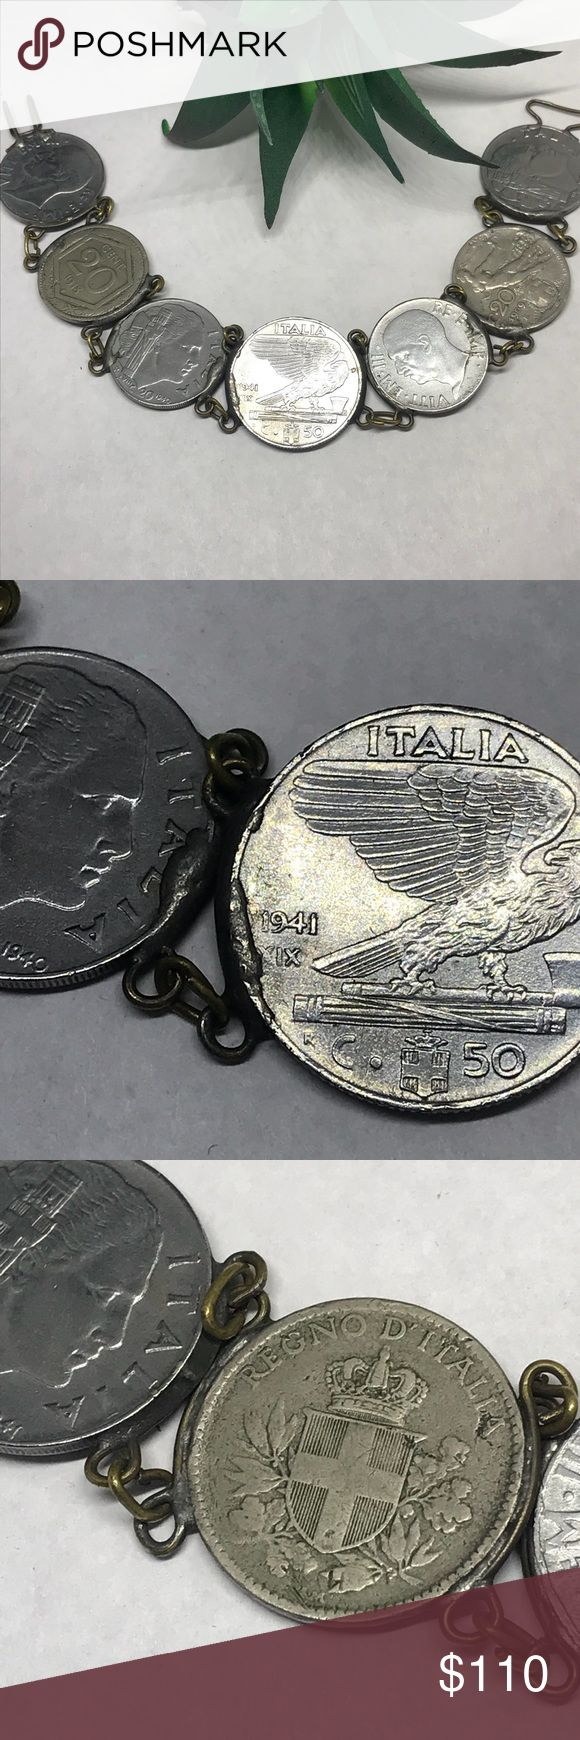 "Vintage Italy 🇮🇹 1909 silver coin bracelet Heritage piece for Italy/Italians. Unique vintage artisan silver coin bracelet. Coins are dated 1941, 1918, 1940, 1941, 1942, 1909, 1940. Pic next to US dime for comparison. Very well made. Simple hook closure. 7 3/4"" A perfect gift for those people who have everything but Are proud of their Italian heritage Vintage Jewelry Bracelets"